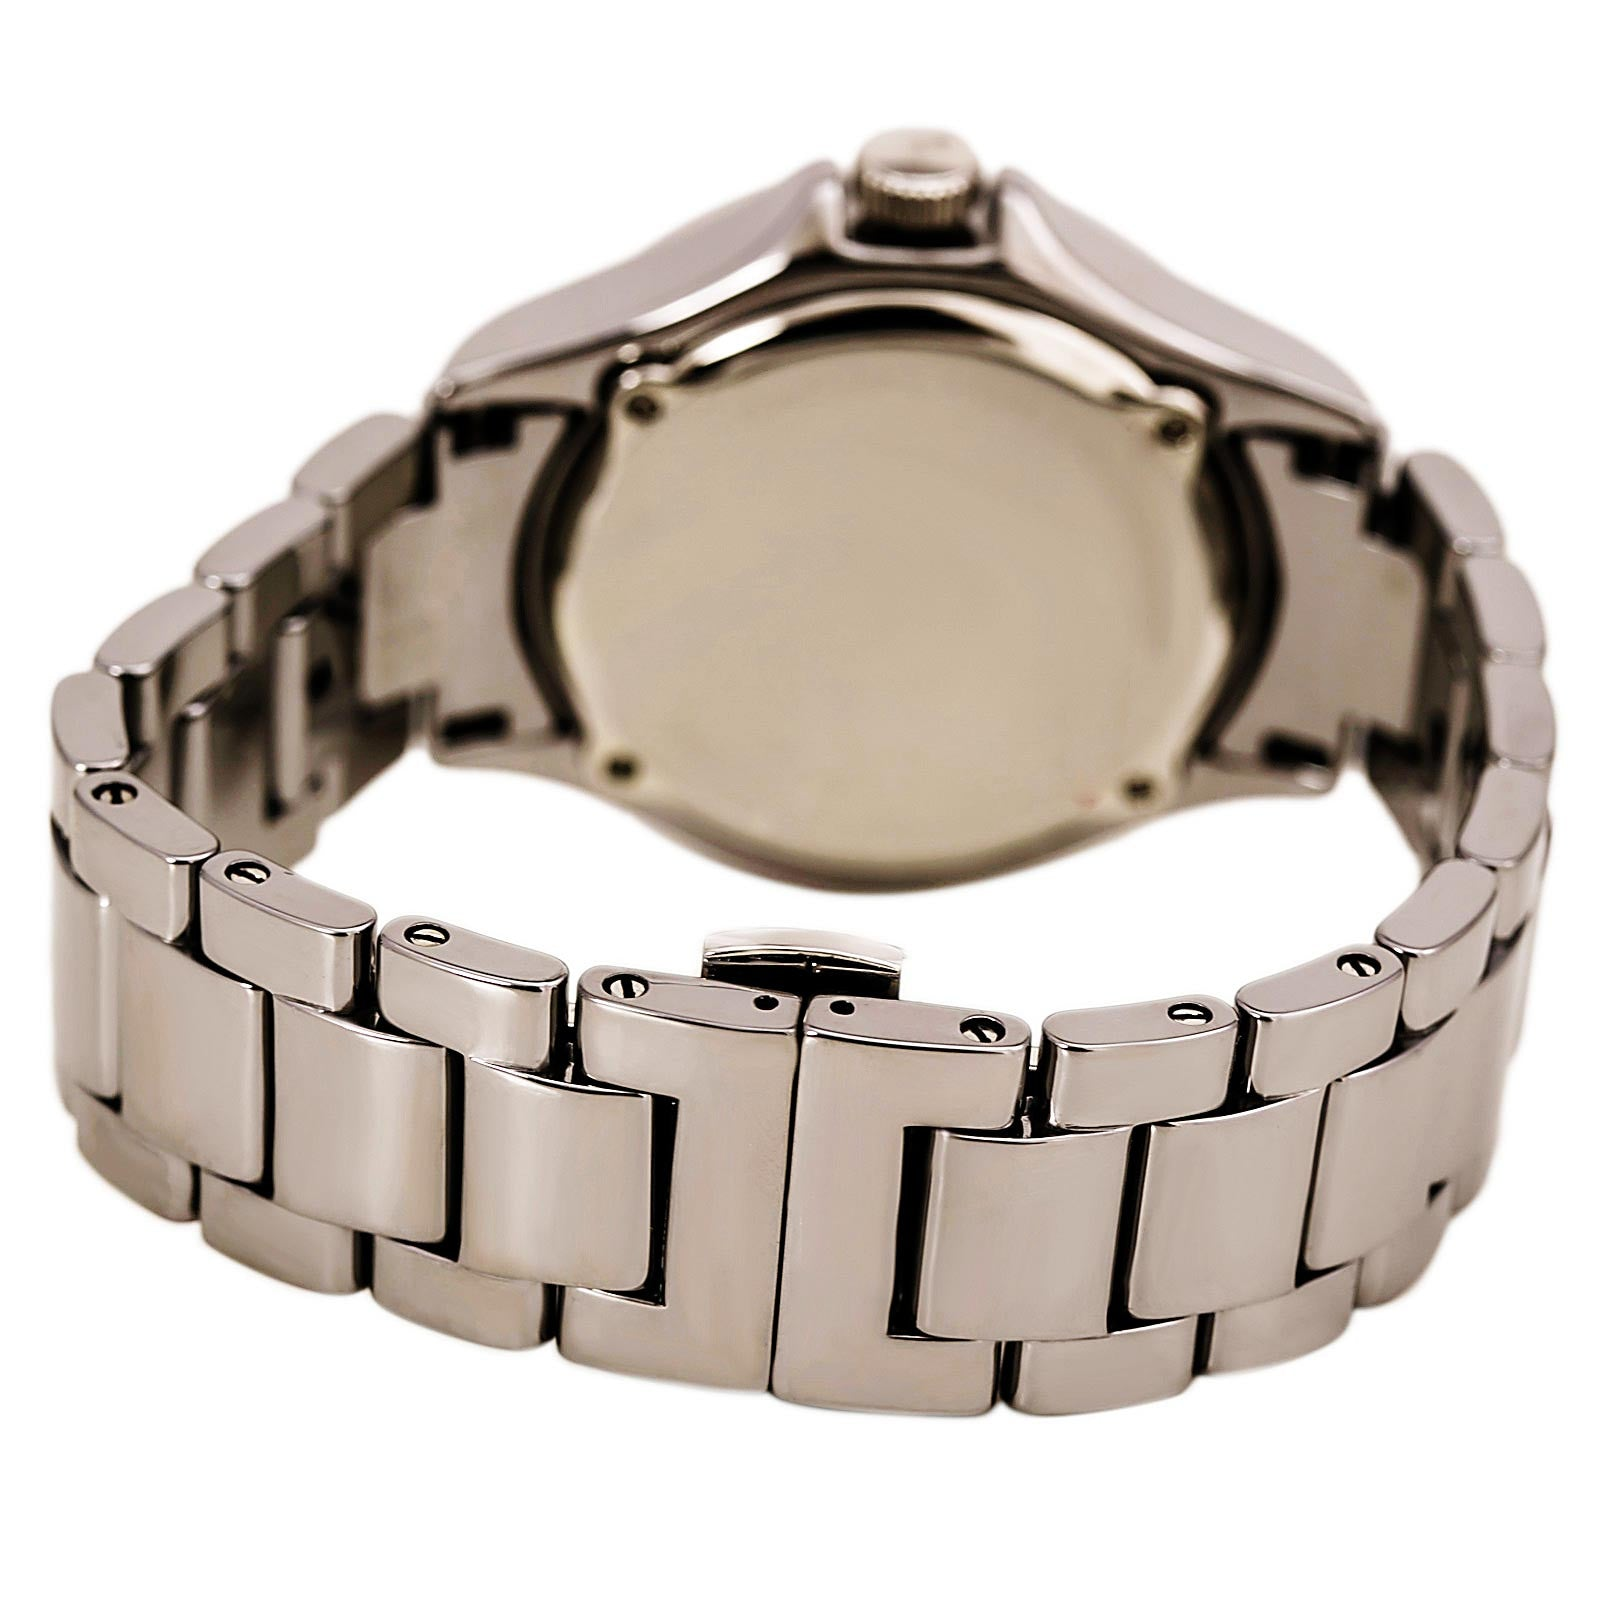 Fossil CE1067 Women's Riley Crystal Accented Bezel Grey Dial Ceramic Bracelet Watch